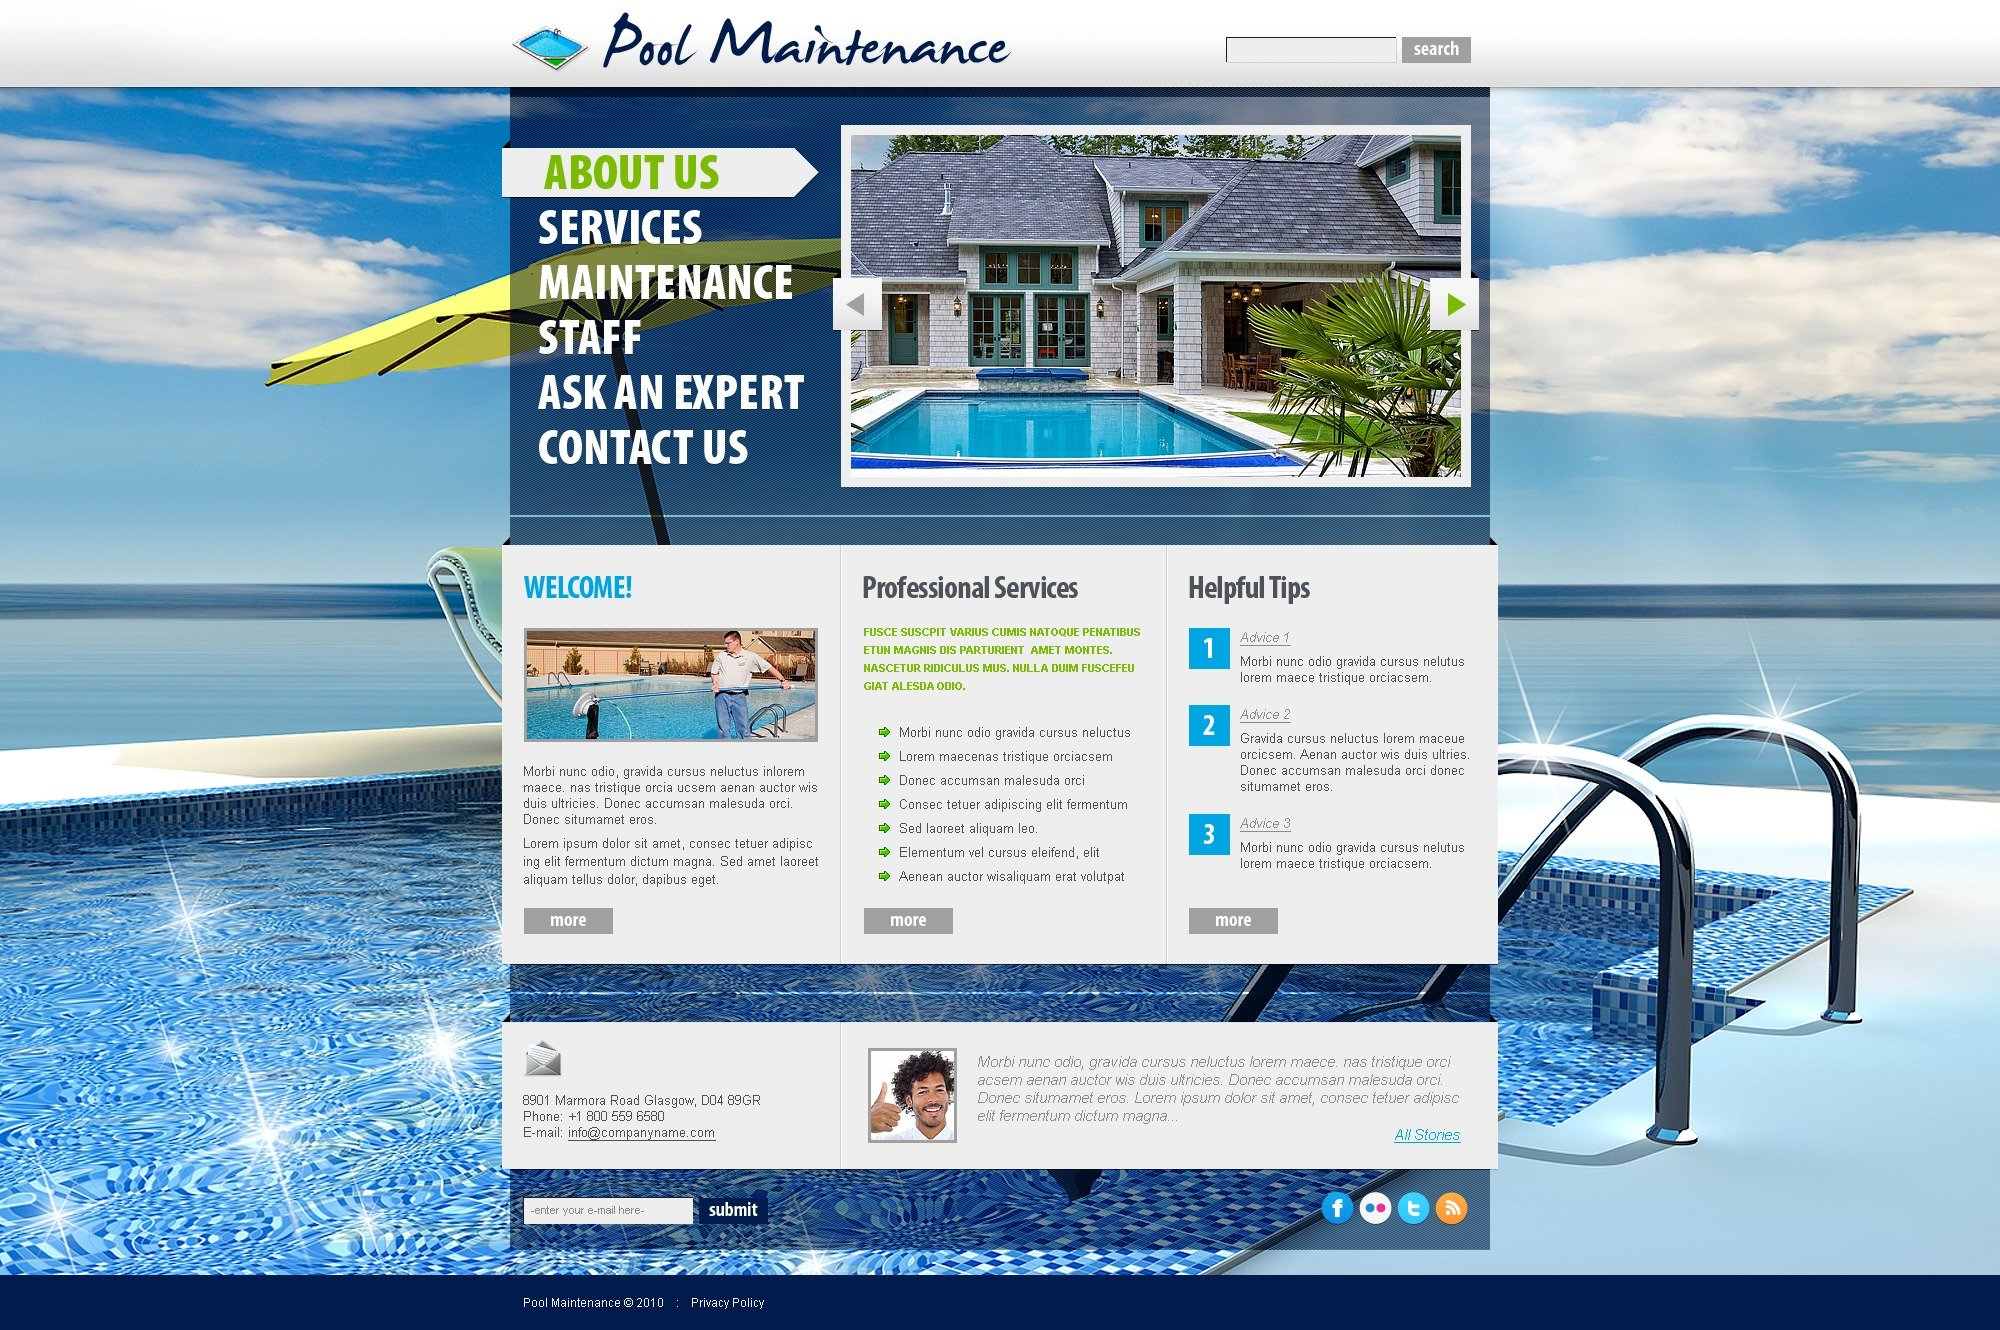 The Swimming Pool PSD Design 54298, one of the best PSD templates of its kind (most popular, flash 8, wide, maintenance services), also known as swimming pool PSD template, maintenance company PSD template, cleaning PSD template, services PSD template, estimate PSD template, cleaner PSD template, dirty PSD template, testimonials PSD template, professional PSD template, workteam PSD template, tips PSD template, client PSD template, price PSD template, tidying up PSD template, sponge PSD template, decoration PSD template, preventative PSD template, plumbing PSD template, repair PSD template, resurfacing PSD template, painting PSD template, fiberglass PSD template, plaster PSD template, deck PSD template, drainage PSD template, renovation and related with swimming pool, maintenance company, cleaning, services, estimate, cleaner, dirty, testimonials, professional, workteam, tips, client, price, tidying up, sponge, decoration, preventative, plumbing, repair, resurfacing, painting, fiberglass, plaster, deck, drainage, renovation, etc.